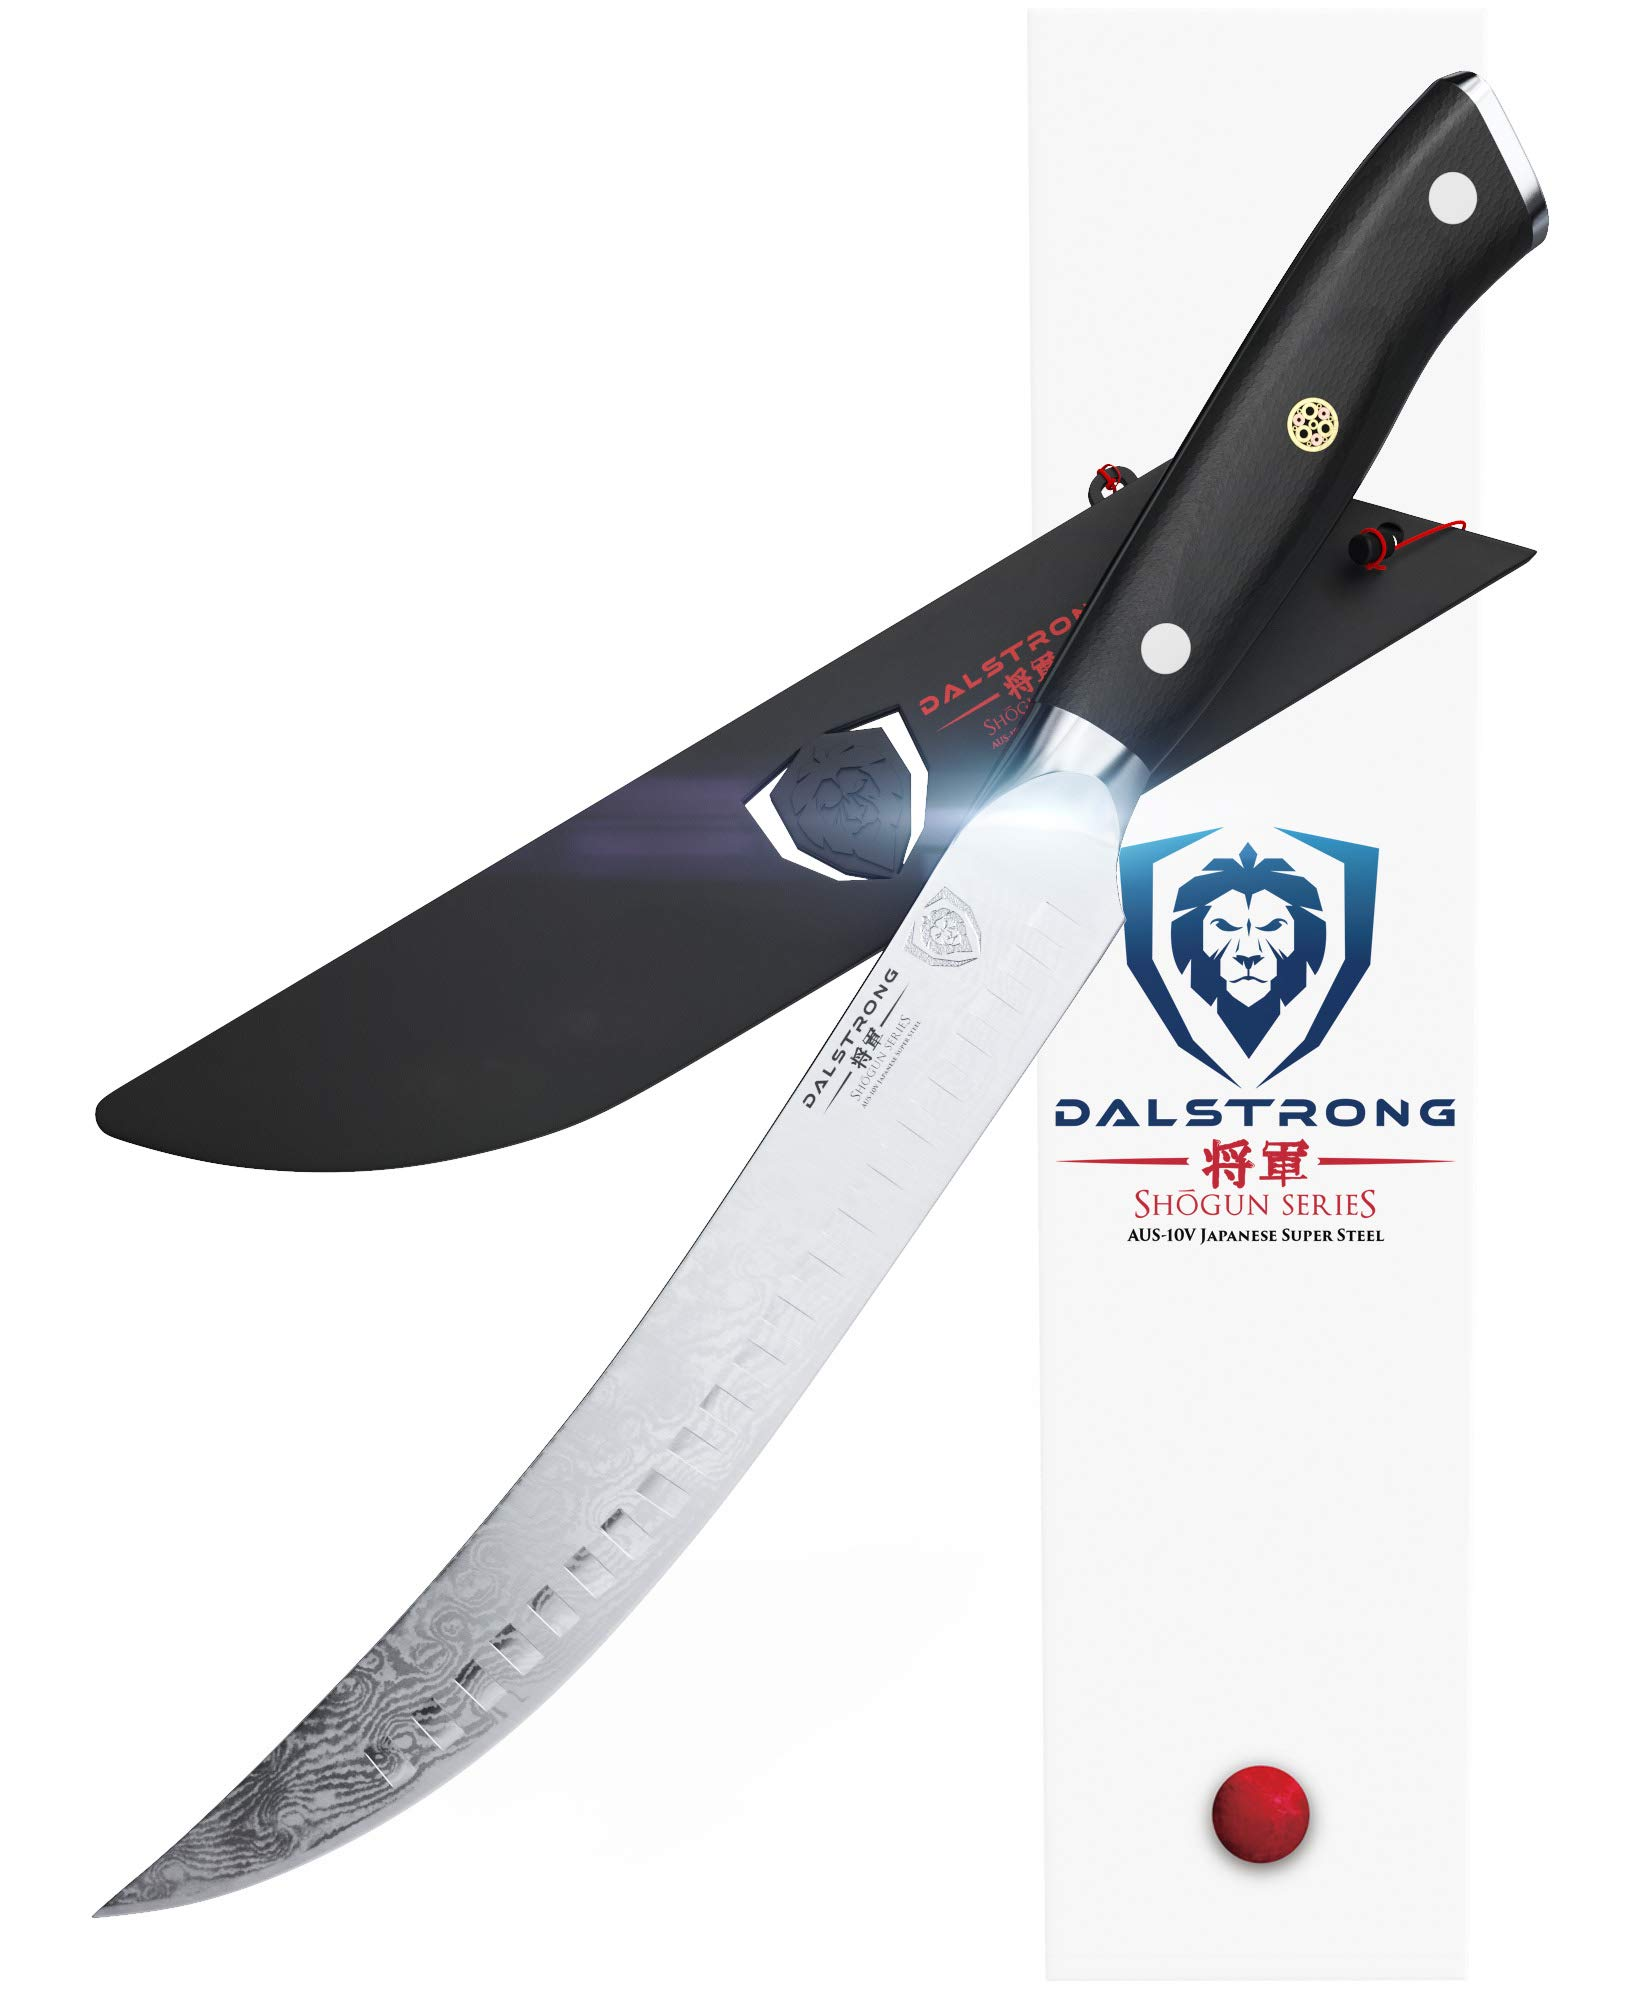 DALSTRONG Butcher's Breaking Cimitar Knife - 8'' - Shogun Series Slicer - Japanese AUS-10V Super Steel - Vacuum Treated - Guard Included by Dalstrong